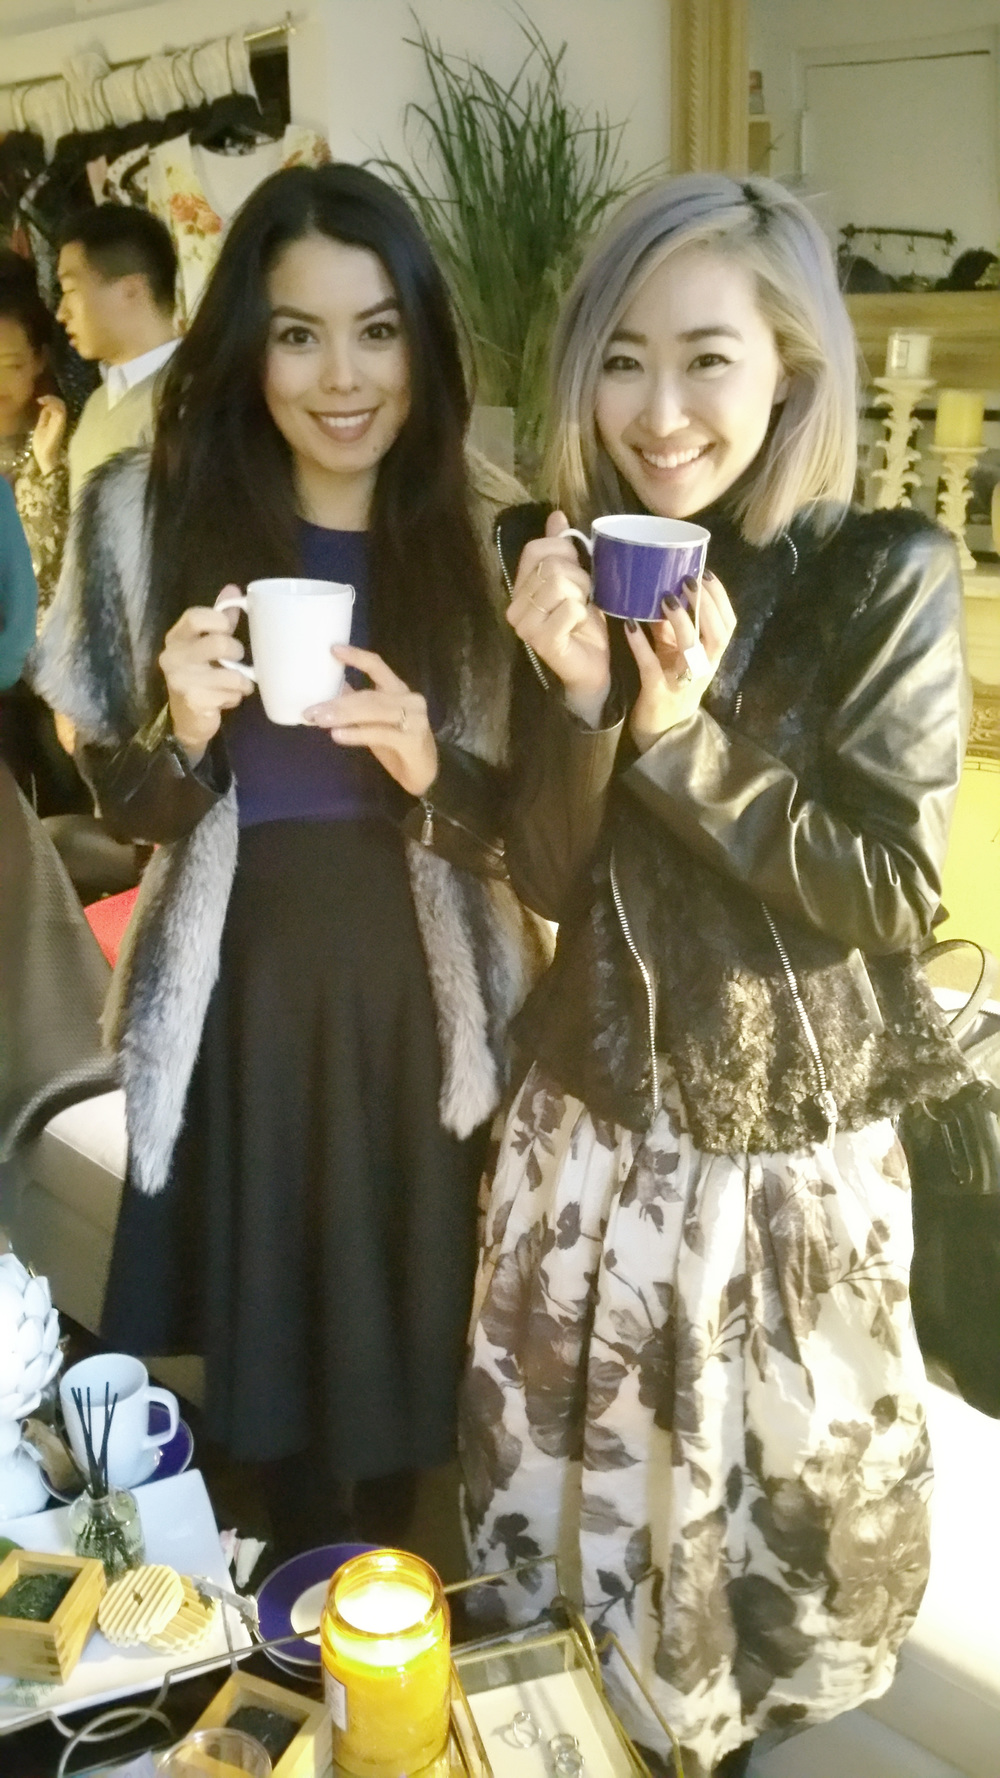 [Roxy from RoxyLimon24  and me sippin' on some good tea]